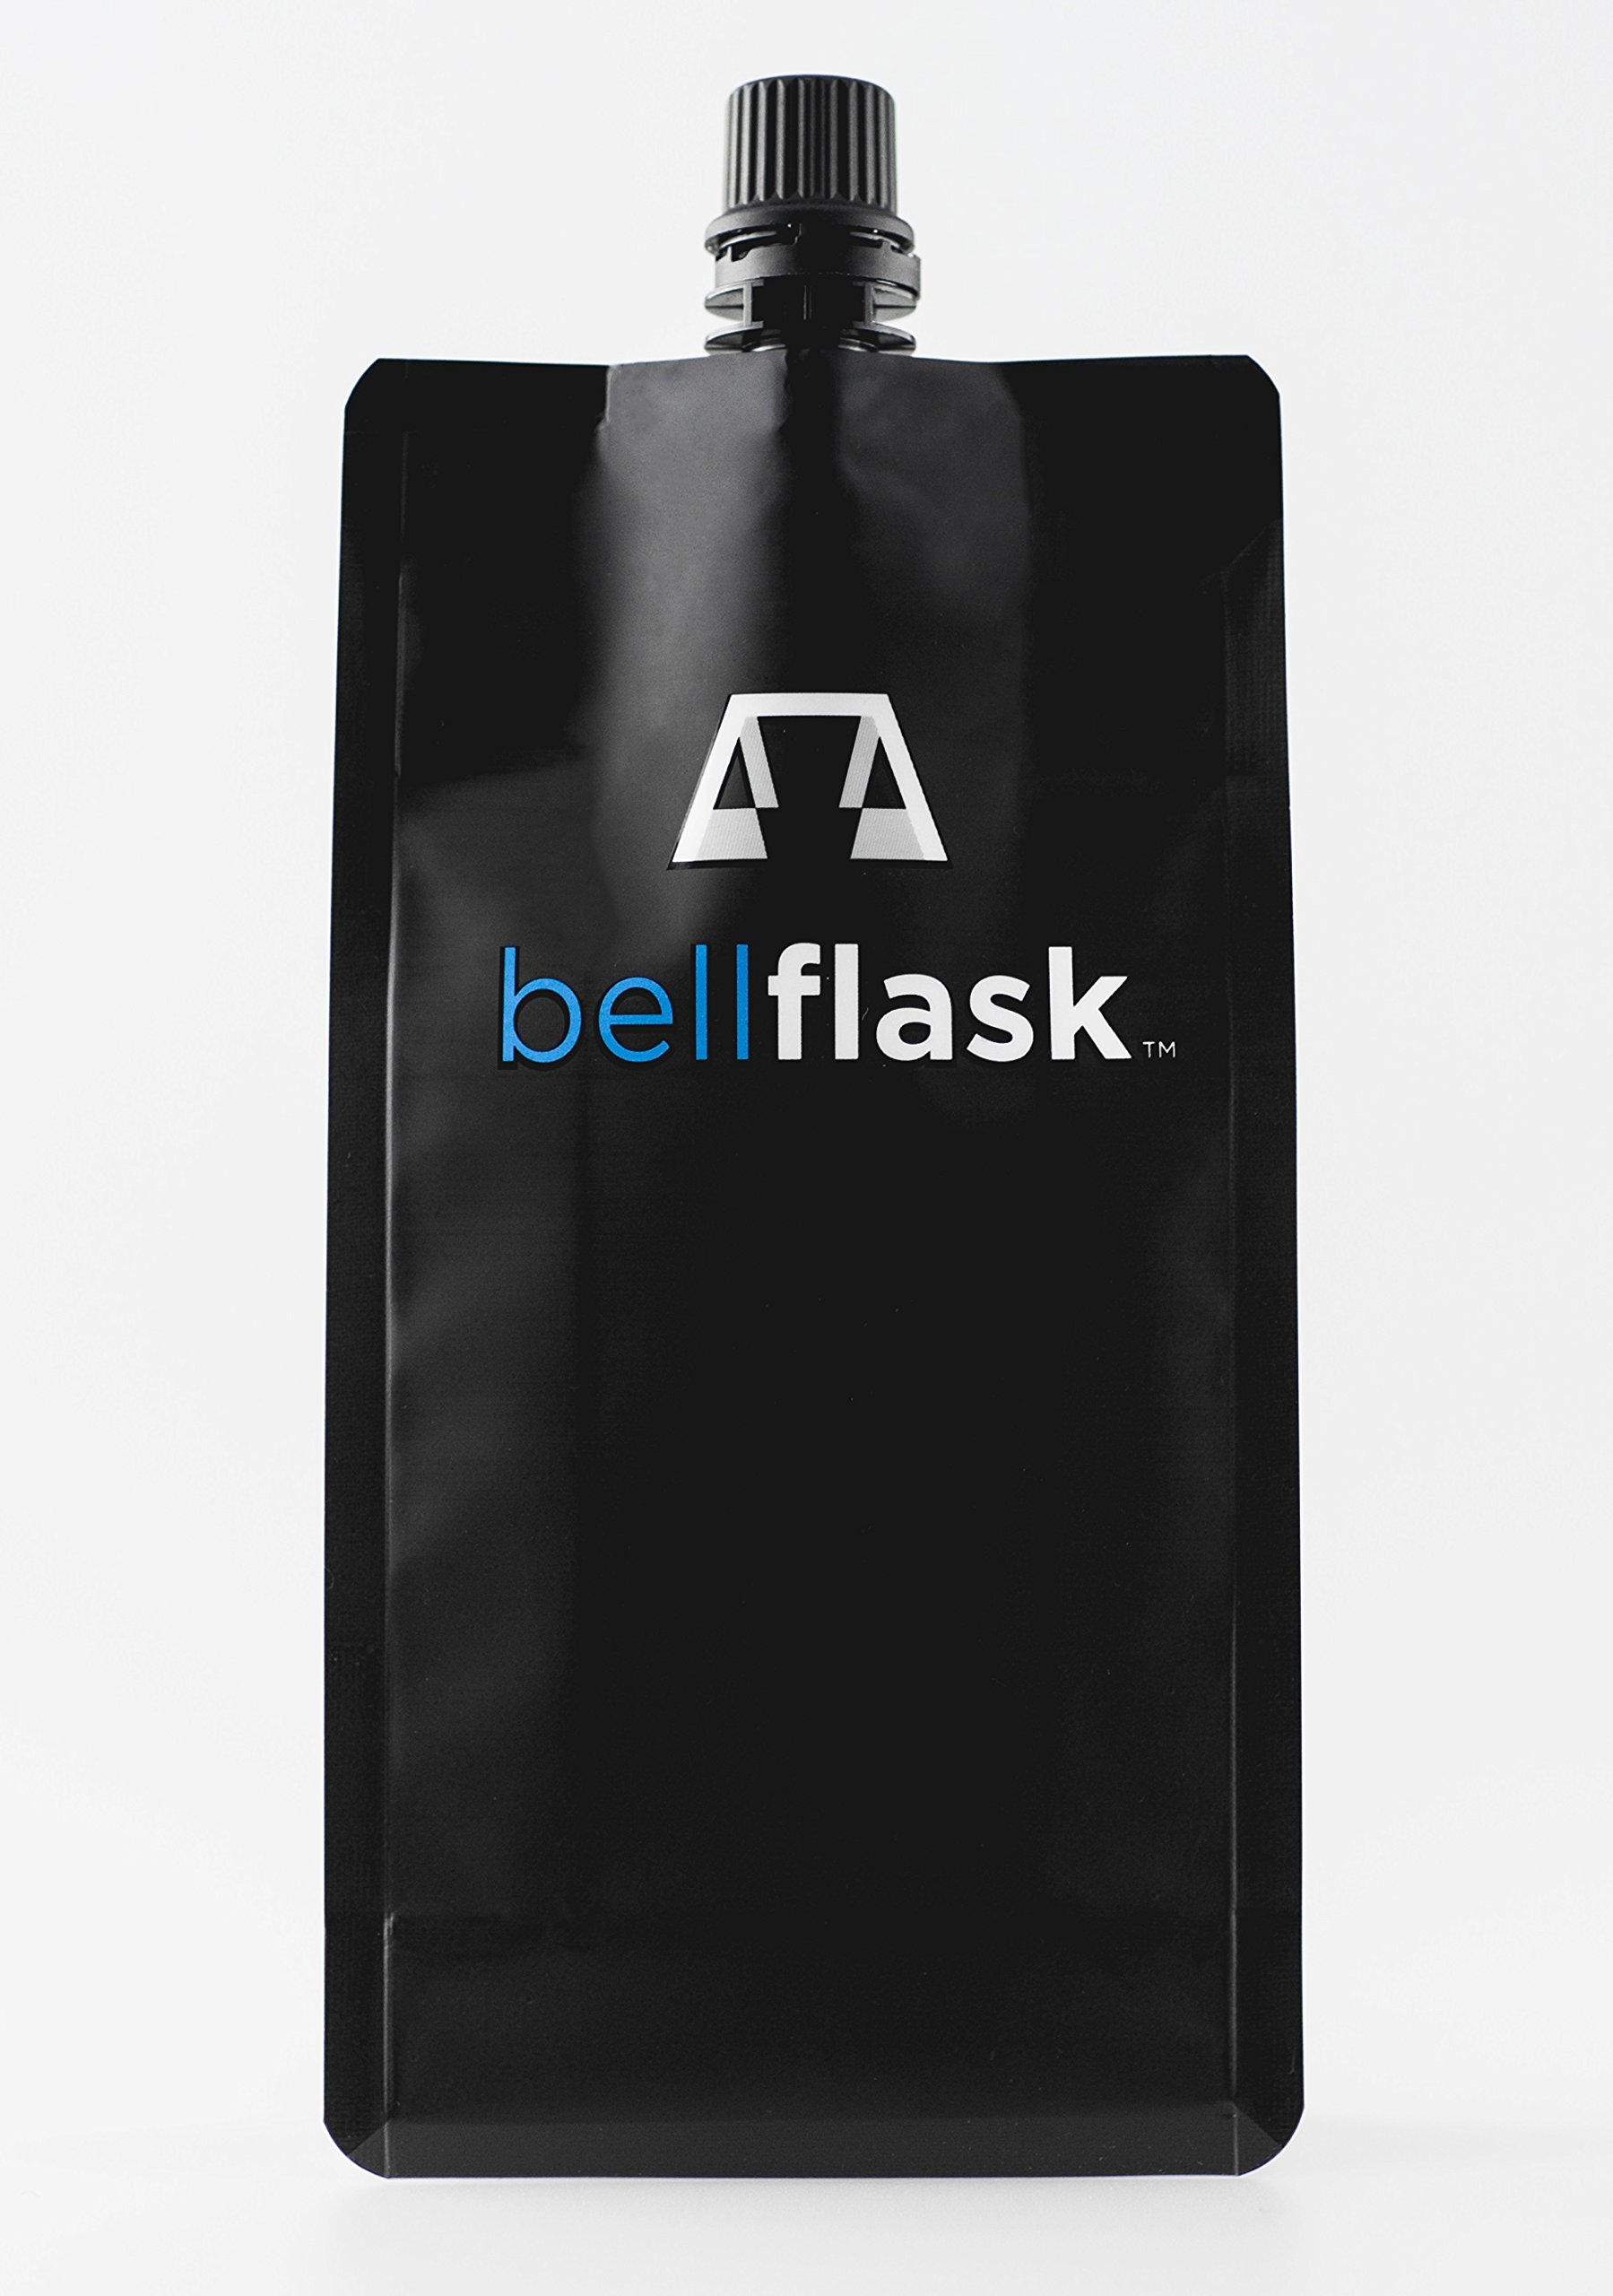 BellFlask - 12 oz. Concealable, Flexible, Reusable, Best, Metal-Free Pack of Five Flasks by BellFlask (Image #1)